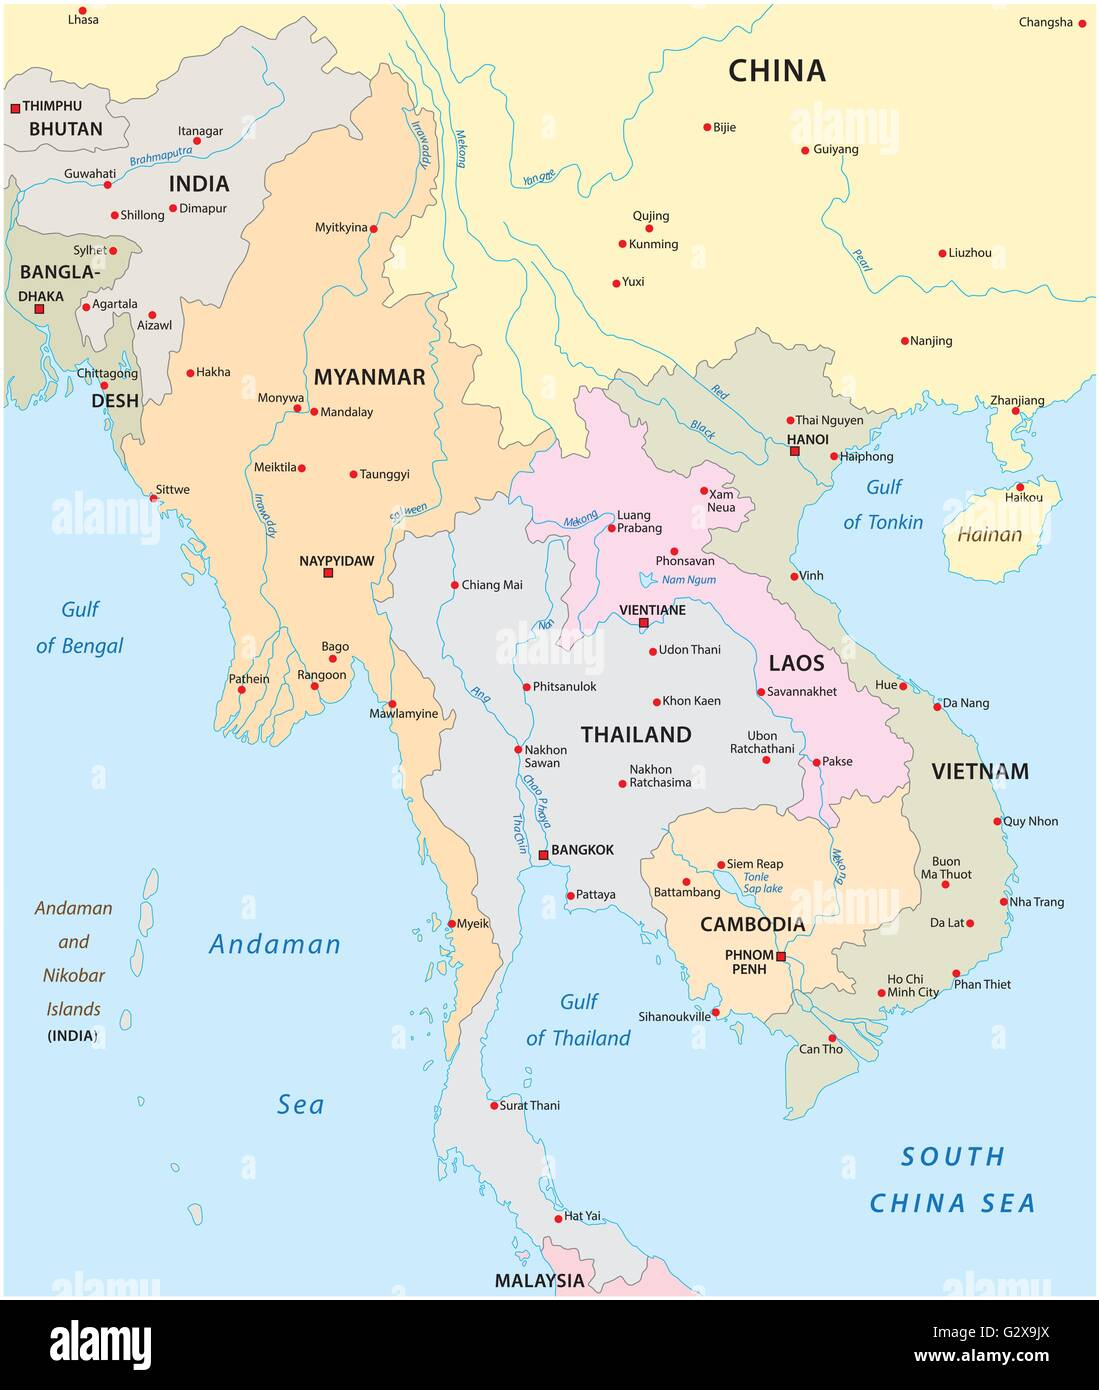 vector map of the states in south east asia - Stock Image